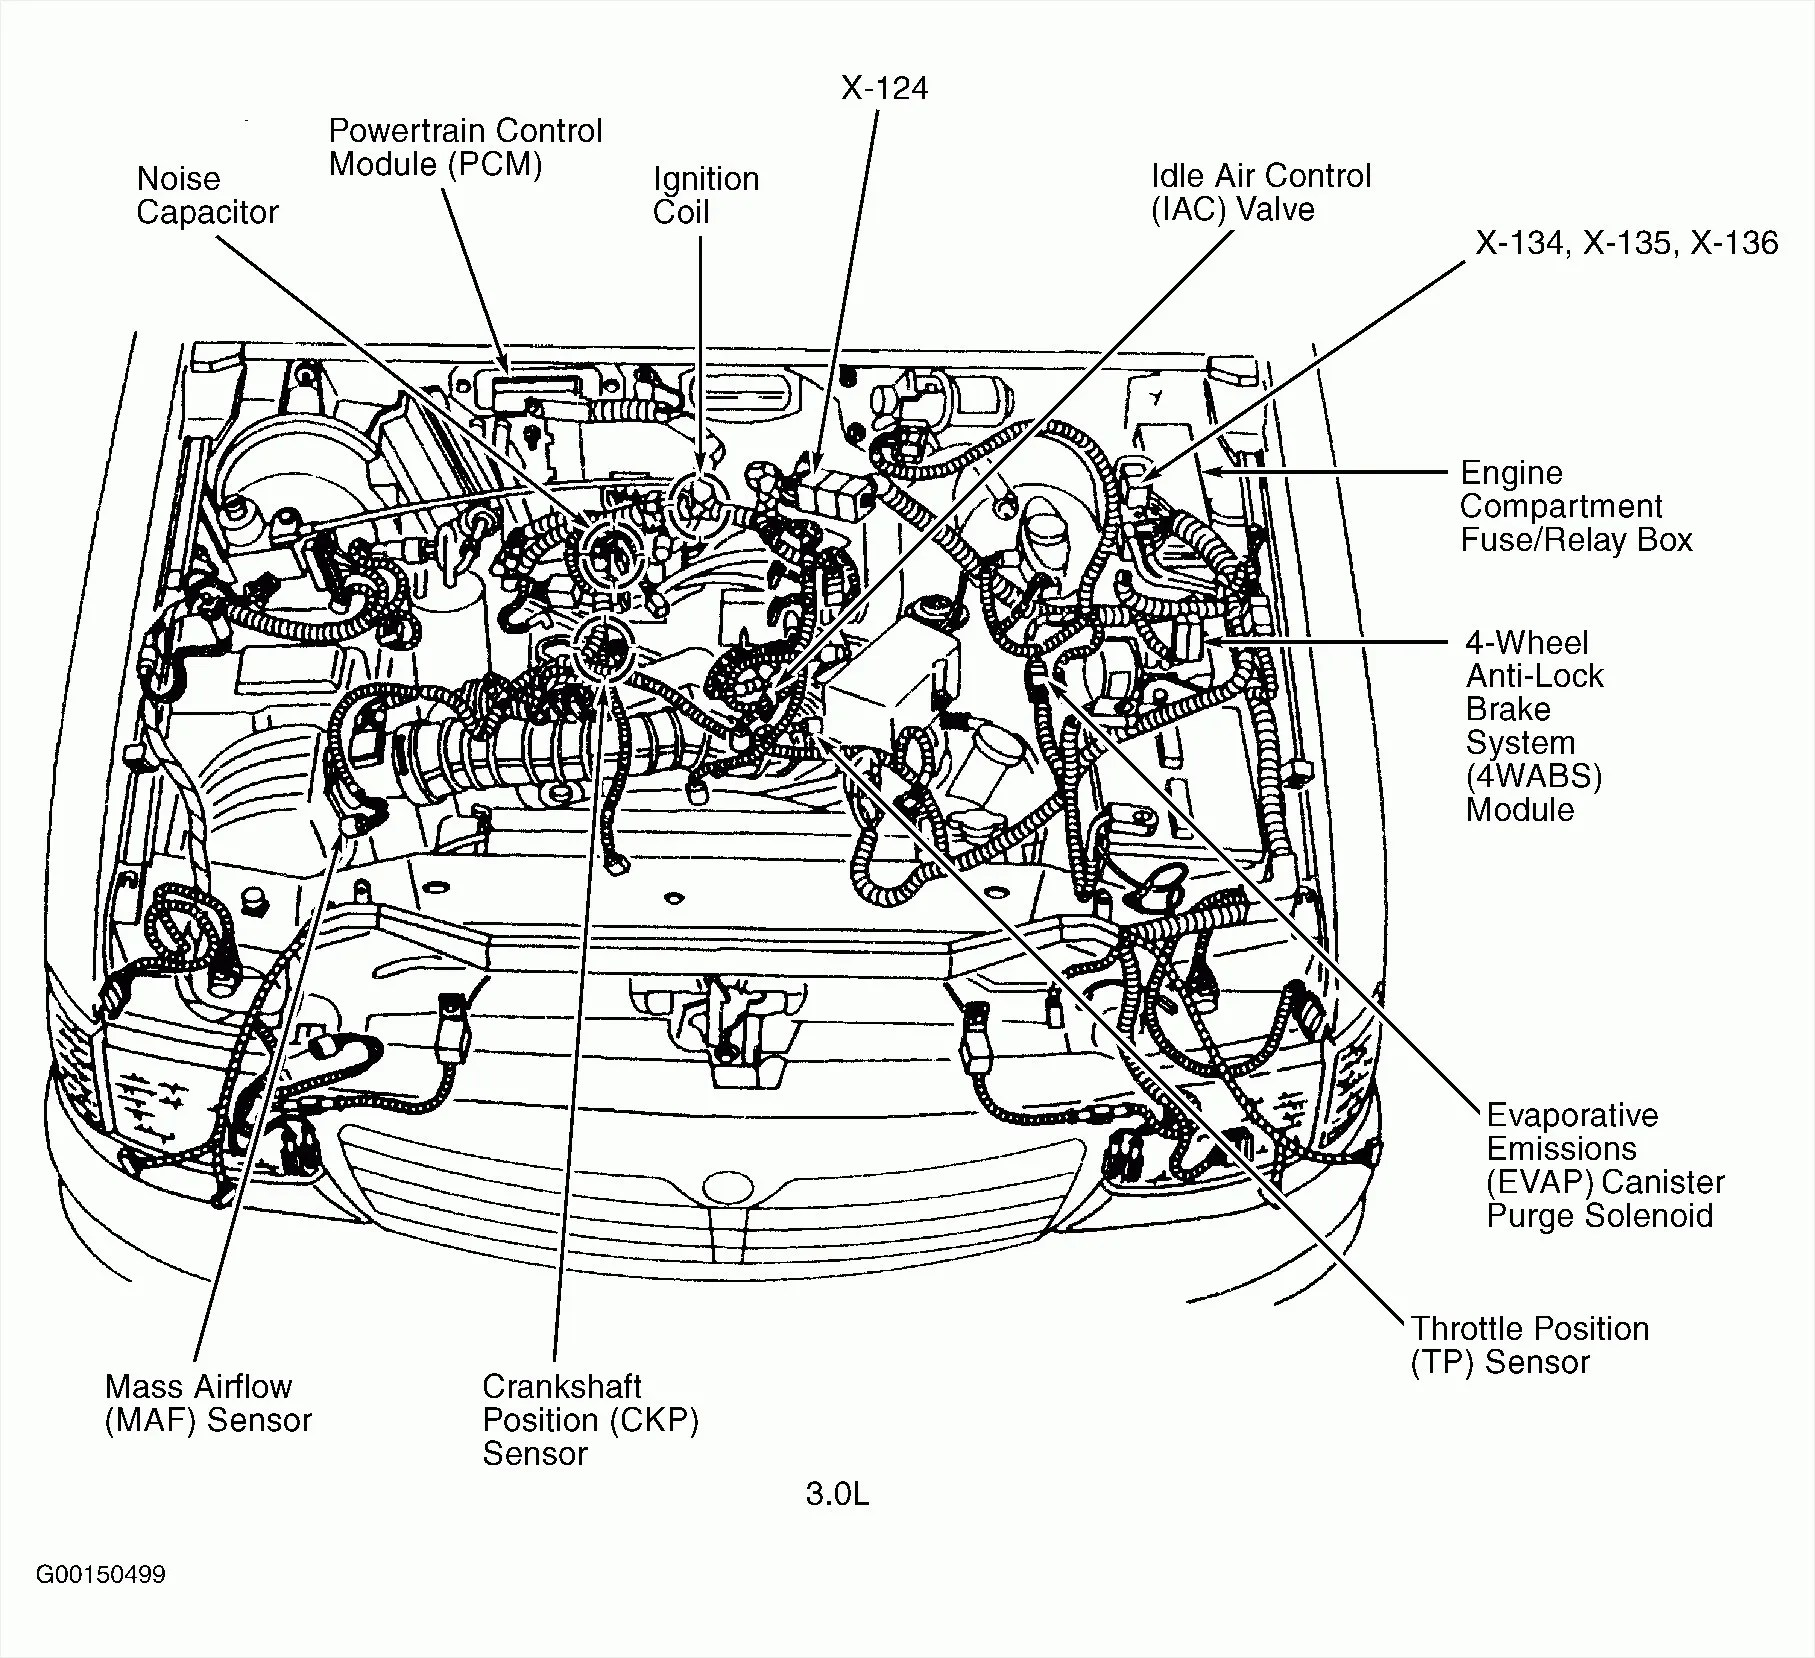 hight resolution of dodge caravan 3 8l engine diagram wiring diagram sheet dodge grand caravan 3 8 engine diagram